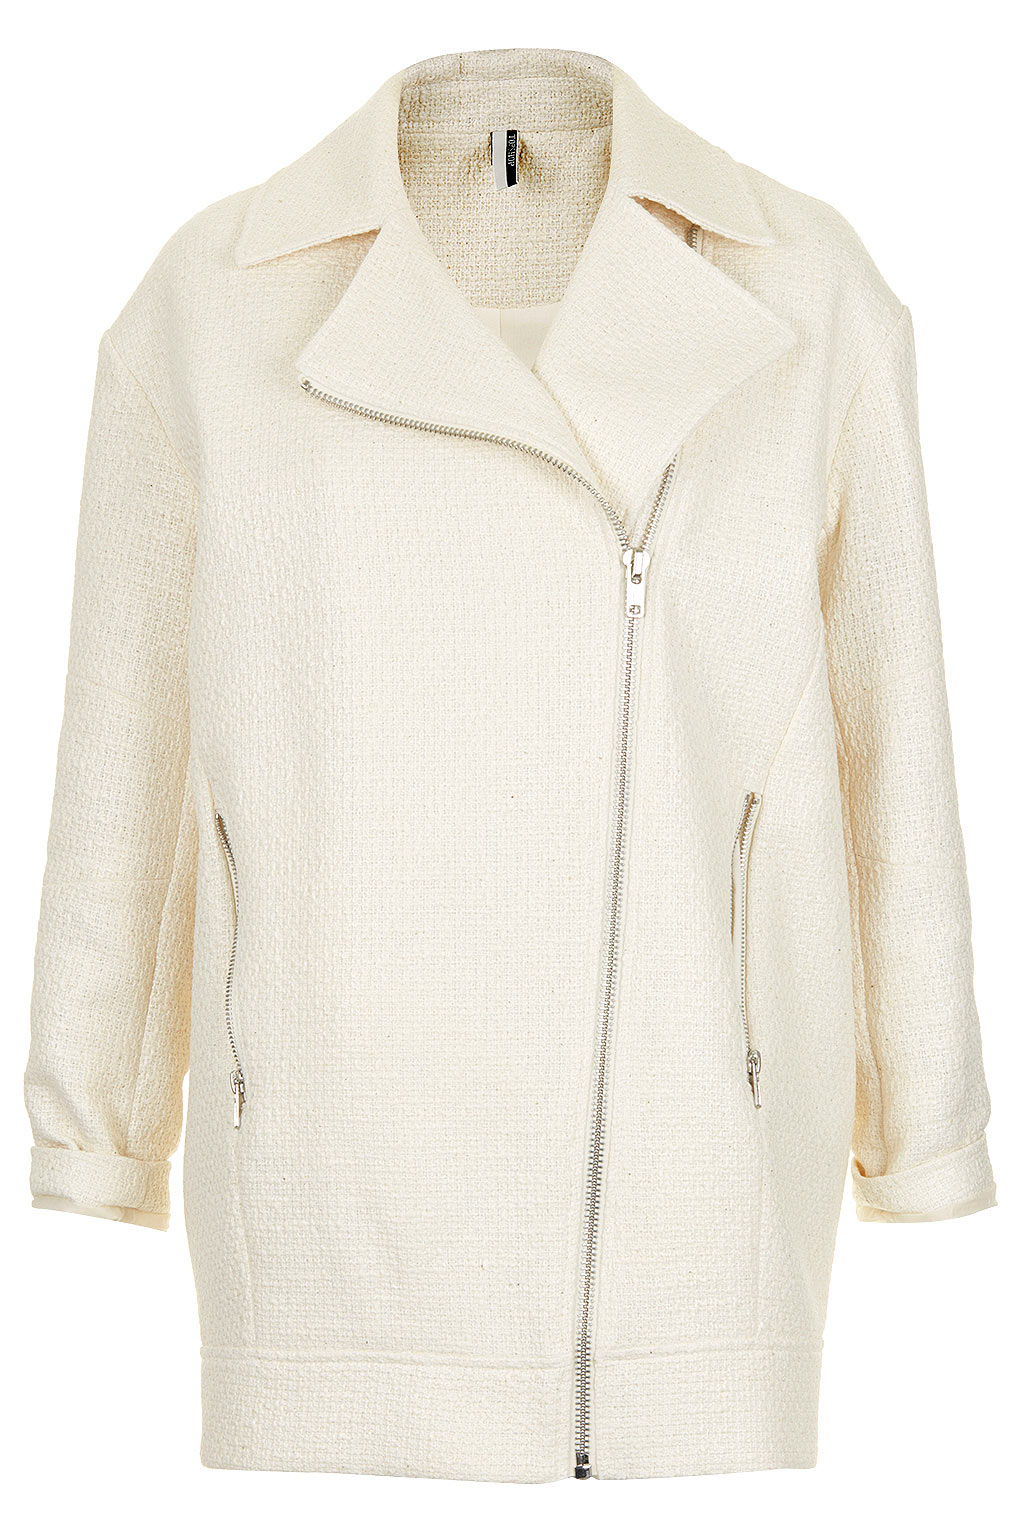 0a9bb69a7daa9 Lyst - TOPSHOP Textured Slouch Biker Jacket in White